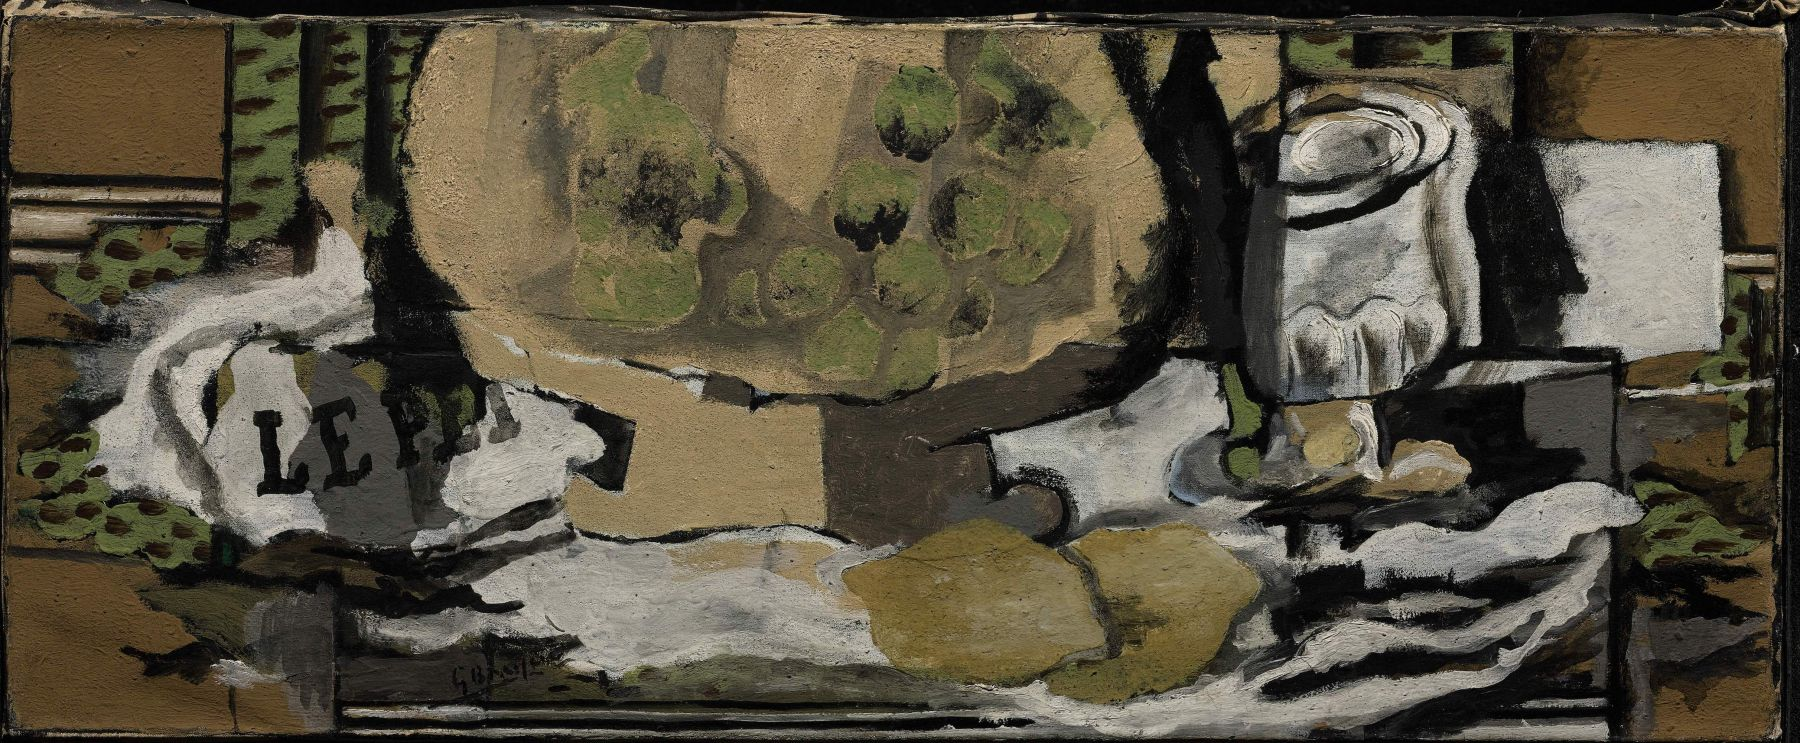 Georges Braque, Verre et compotier, 1922 Oil on canvas 26.5 x 65.5 cm. (10 3/8 x 25 3/4 in.) This painting represents in a cubist manner a glass, marmelade jar in white tons, there are green dots that refers to fuit shapes and a folded newspaper.